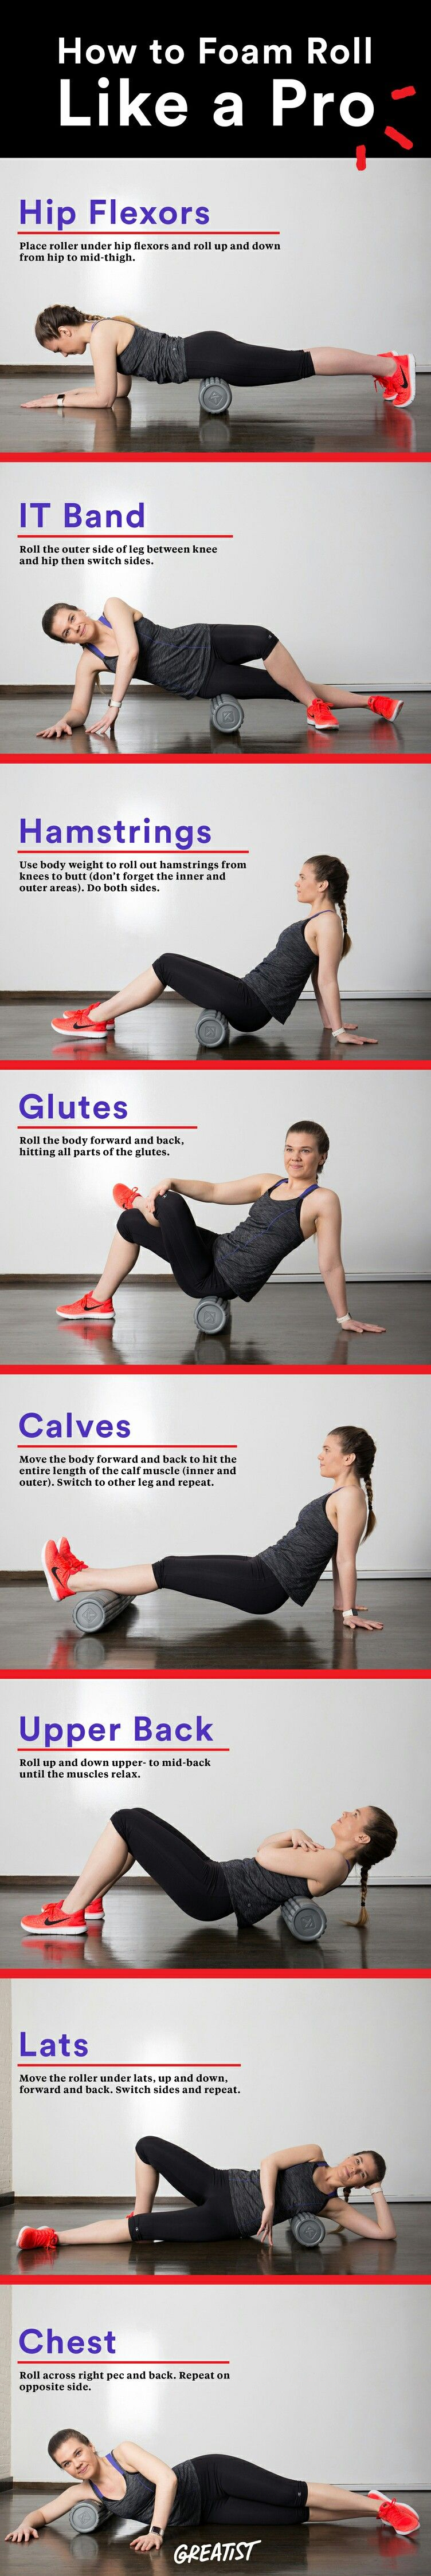 Pin By Becky Puckett On Workout Foam Roller Exercises Easy Yoga Workouts Foam Rolling